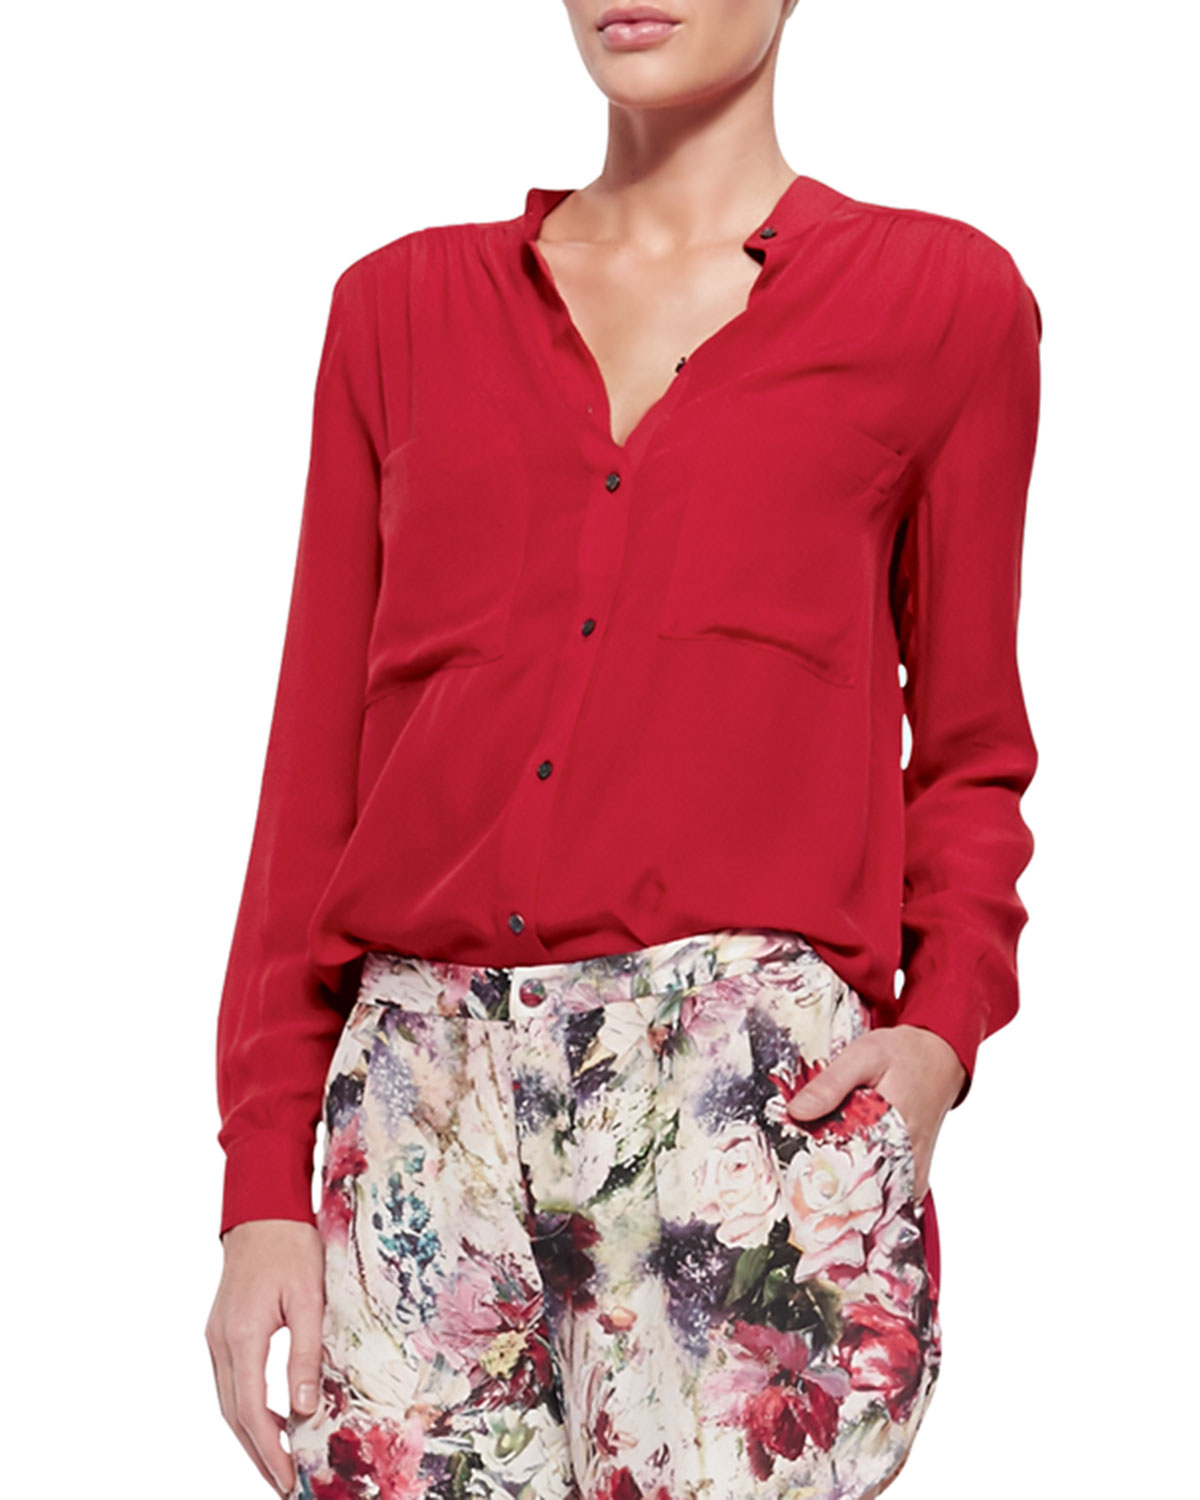 What Color Matches Red Blouse - Tie Blouse